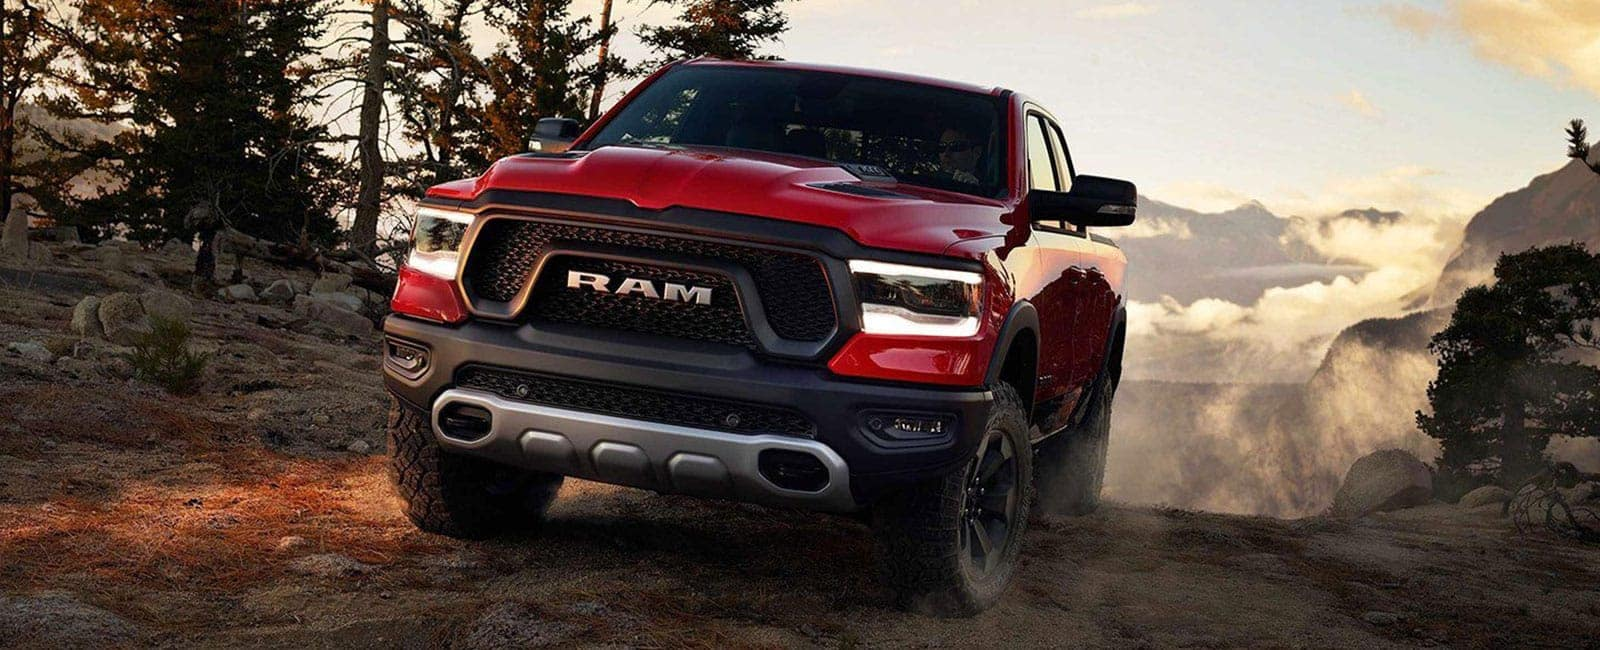 2018 all new ram 1500-2